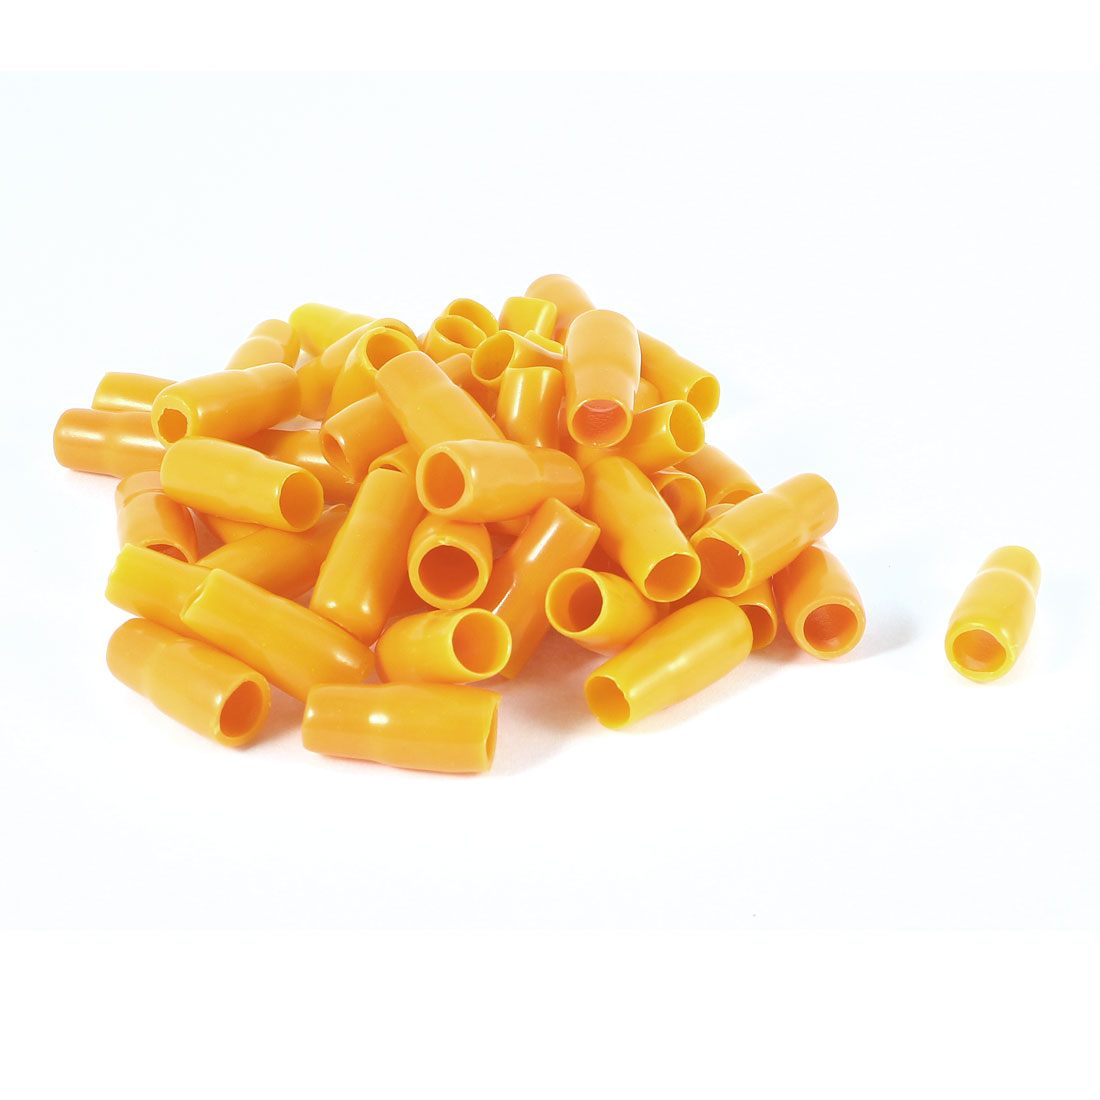 50 Pcs Orange Soft PVC Wire V-8 10mm2 Crimp V Terminal End Insulated Sleeves Caps Cover